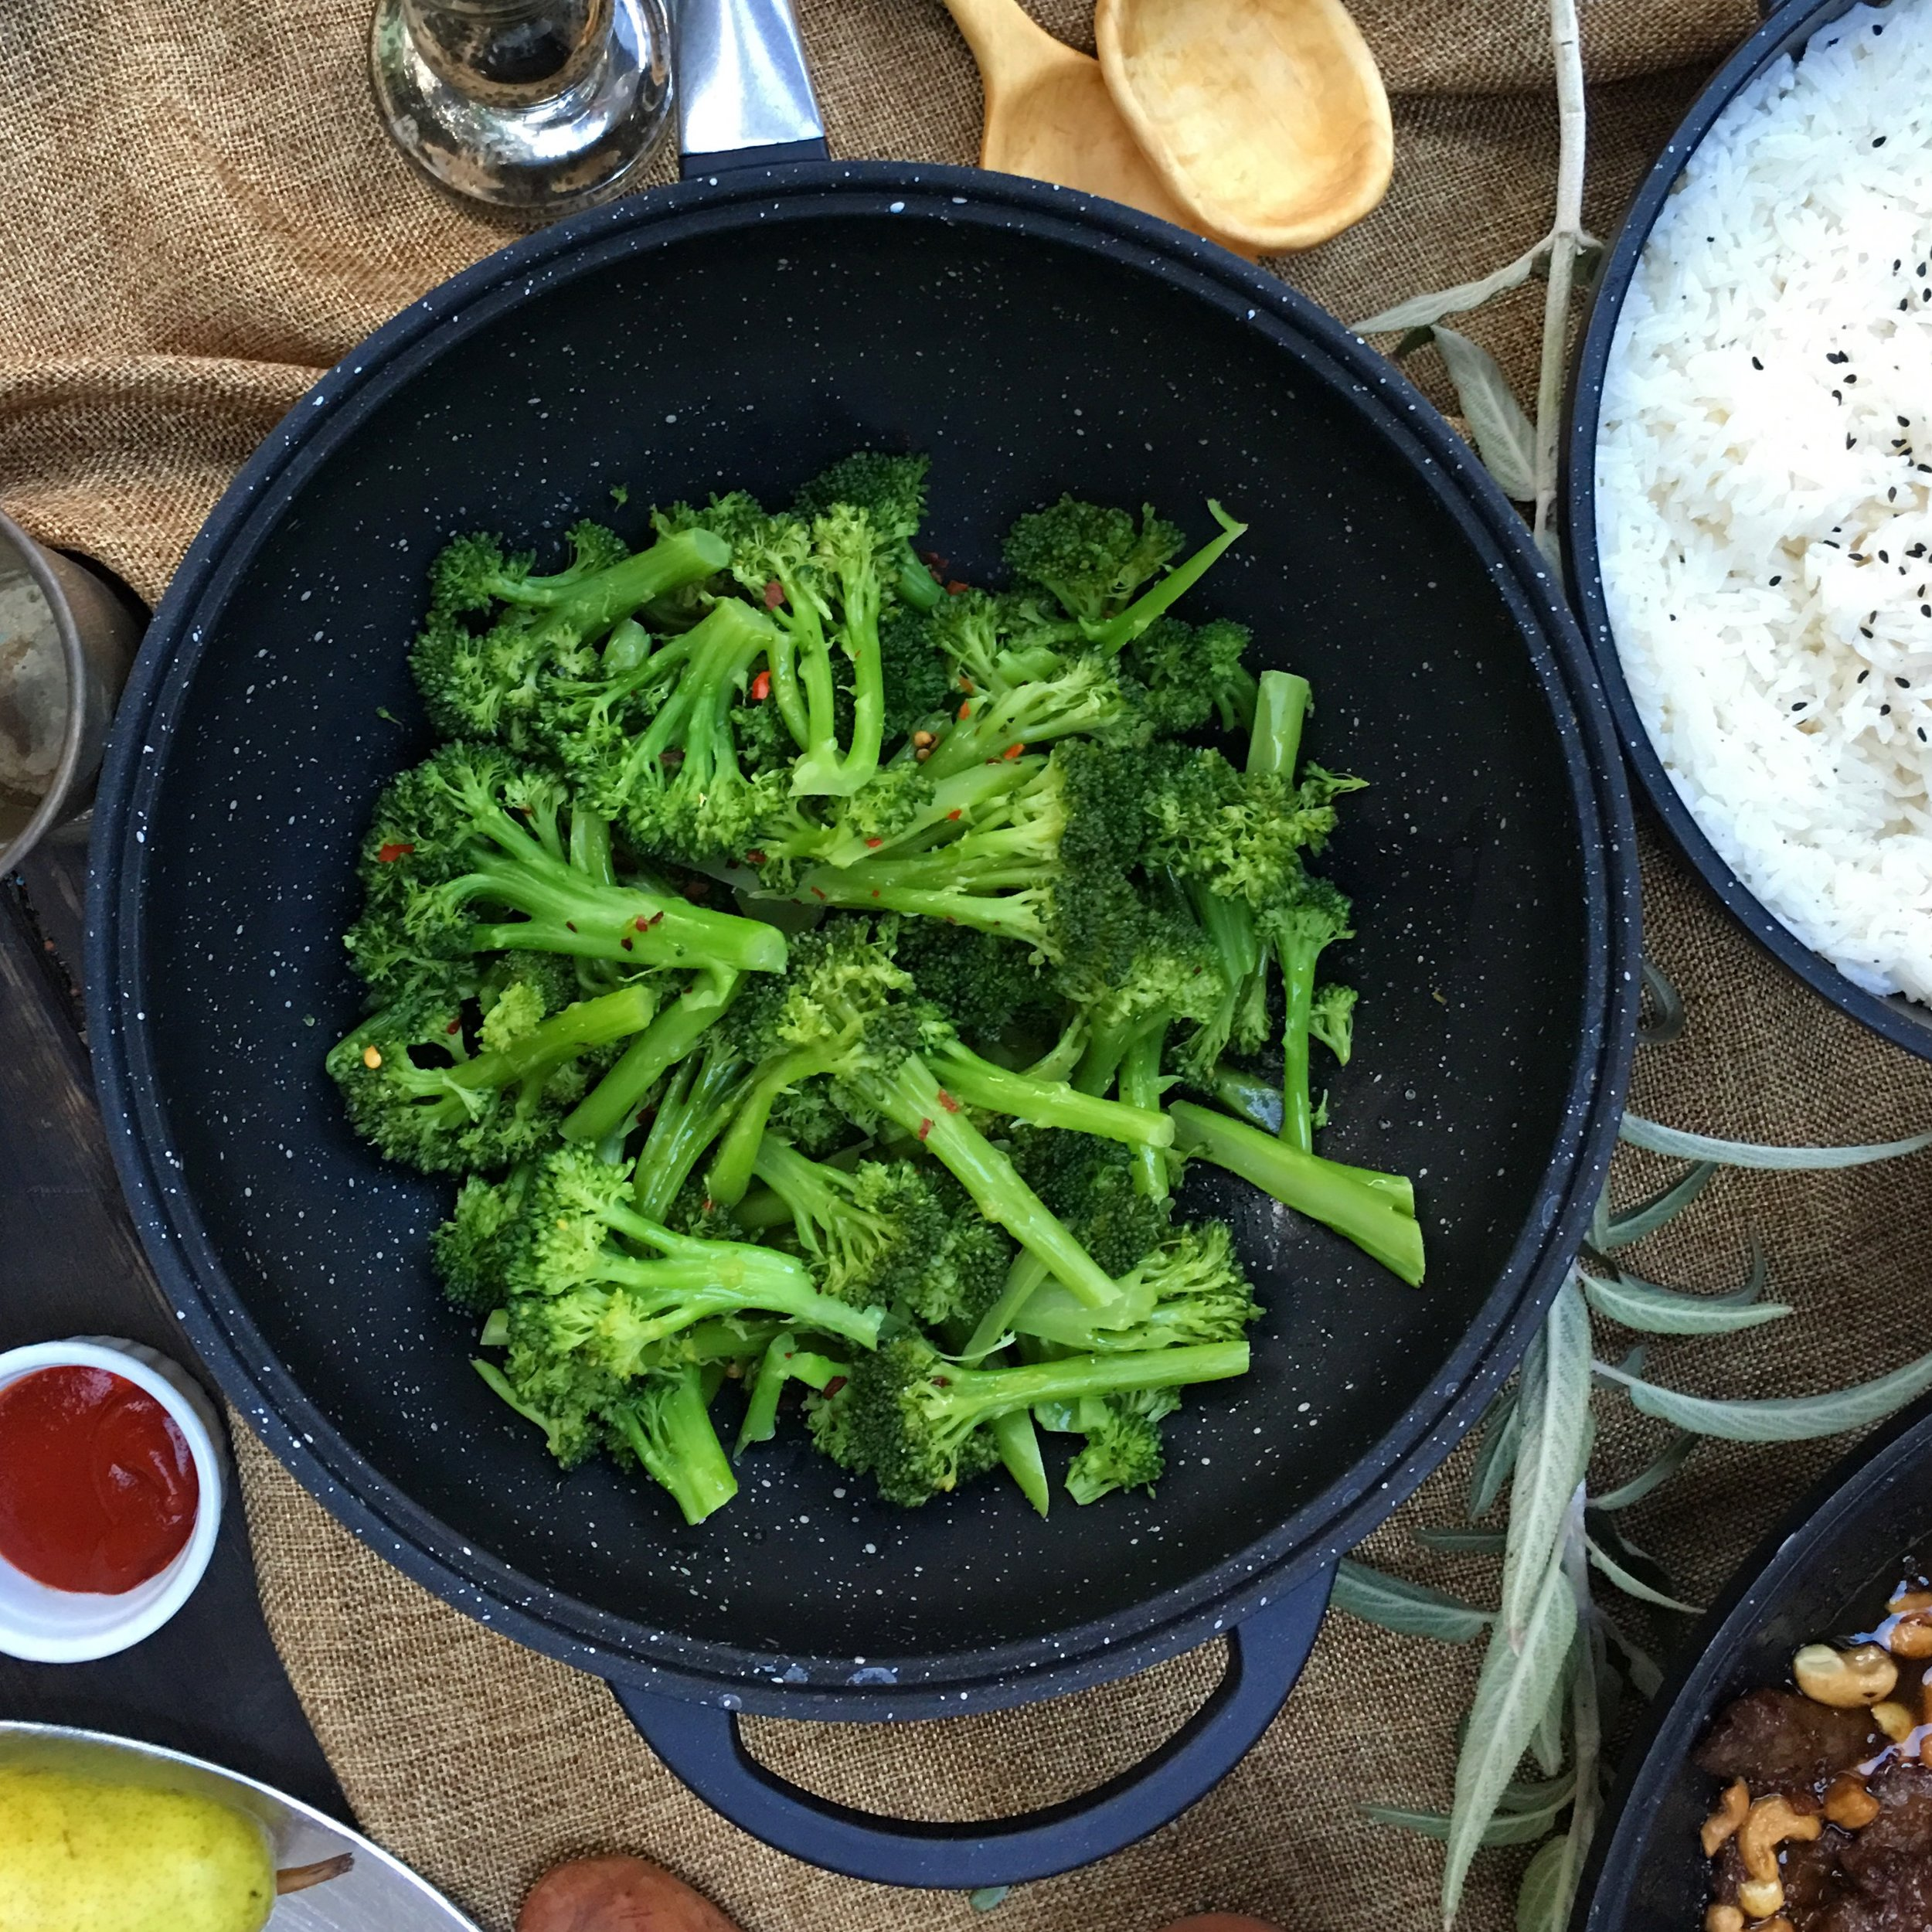 Broccoli quickly sauted in our stir-fry pan.